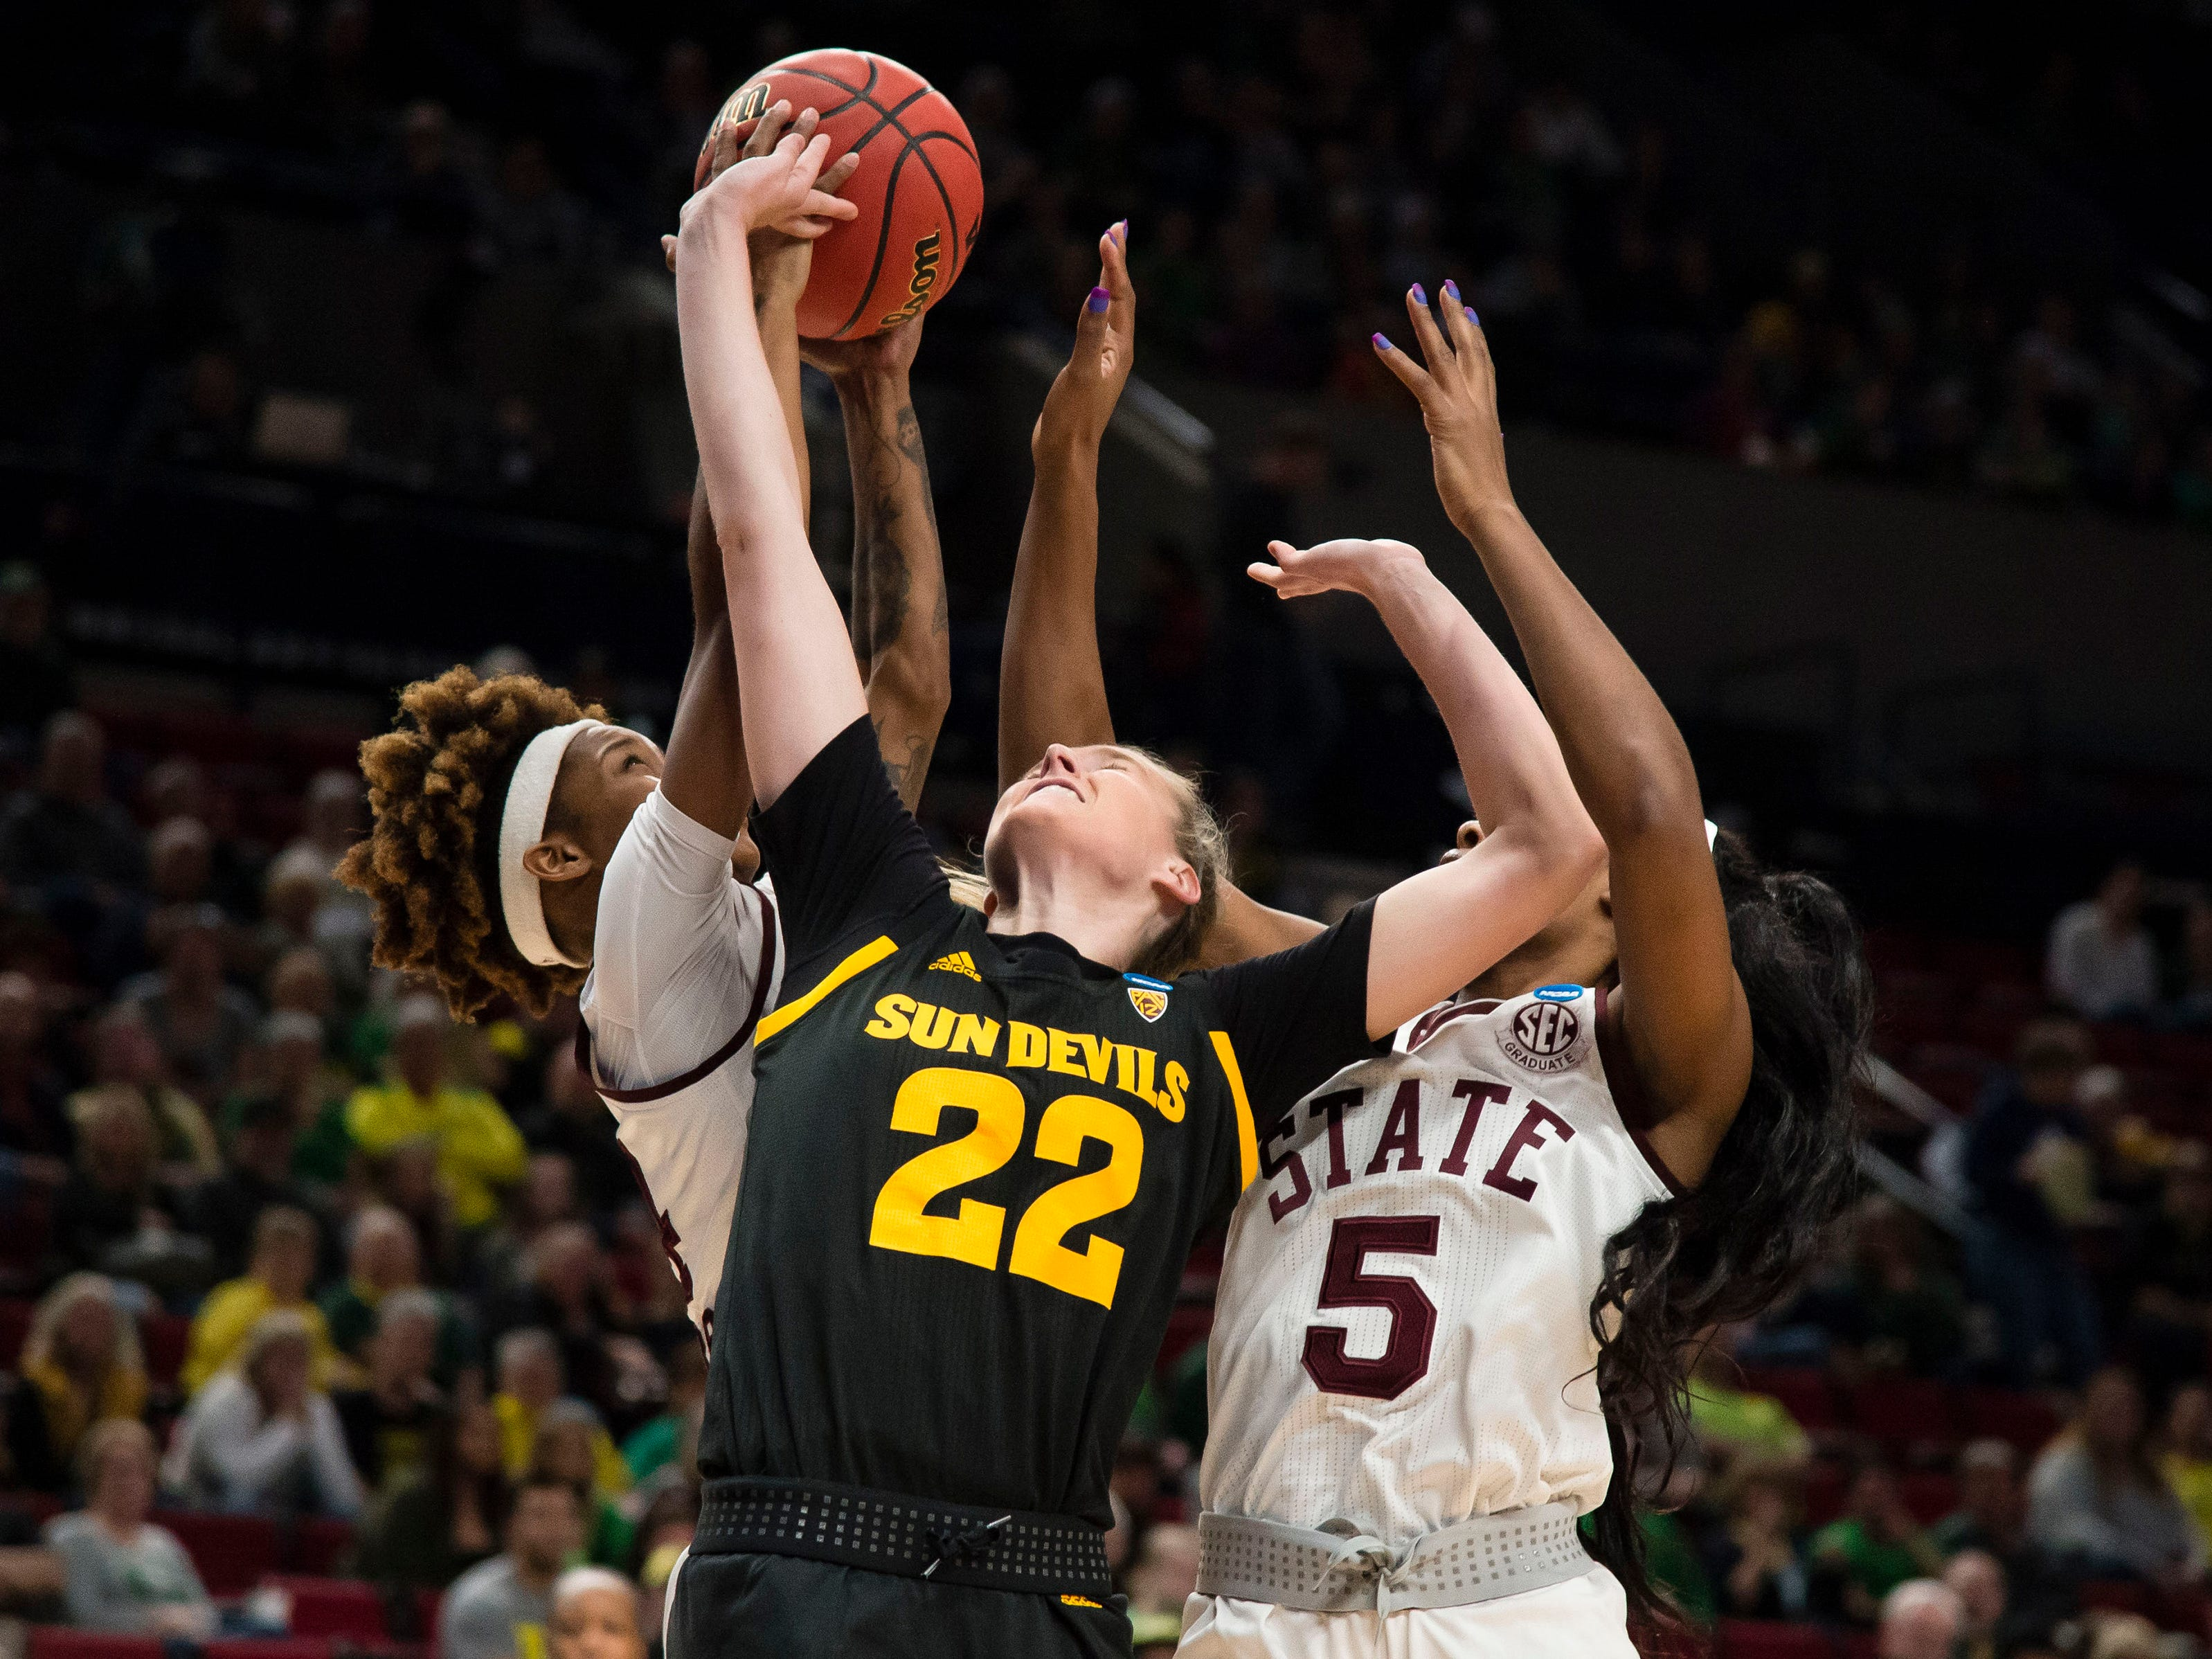 Mar 29, 2019; Portland, OR, USA; Arizona State Sun Devils guard Courtney Ekmark (22) struggles to control a rebound against Mississippi State Bulldogs guard Jordan Danberry (24) and forward Anriel Howard (5) during the first half in the semifinals of the Portland regional in the women's 2019 NCAA Tournament at Moda Center.